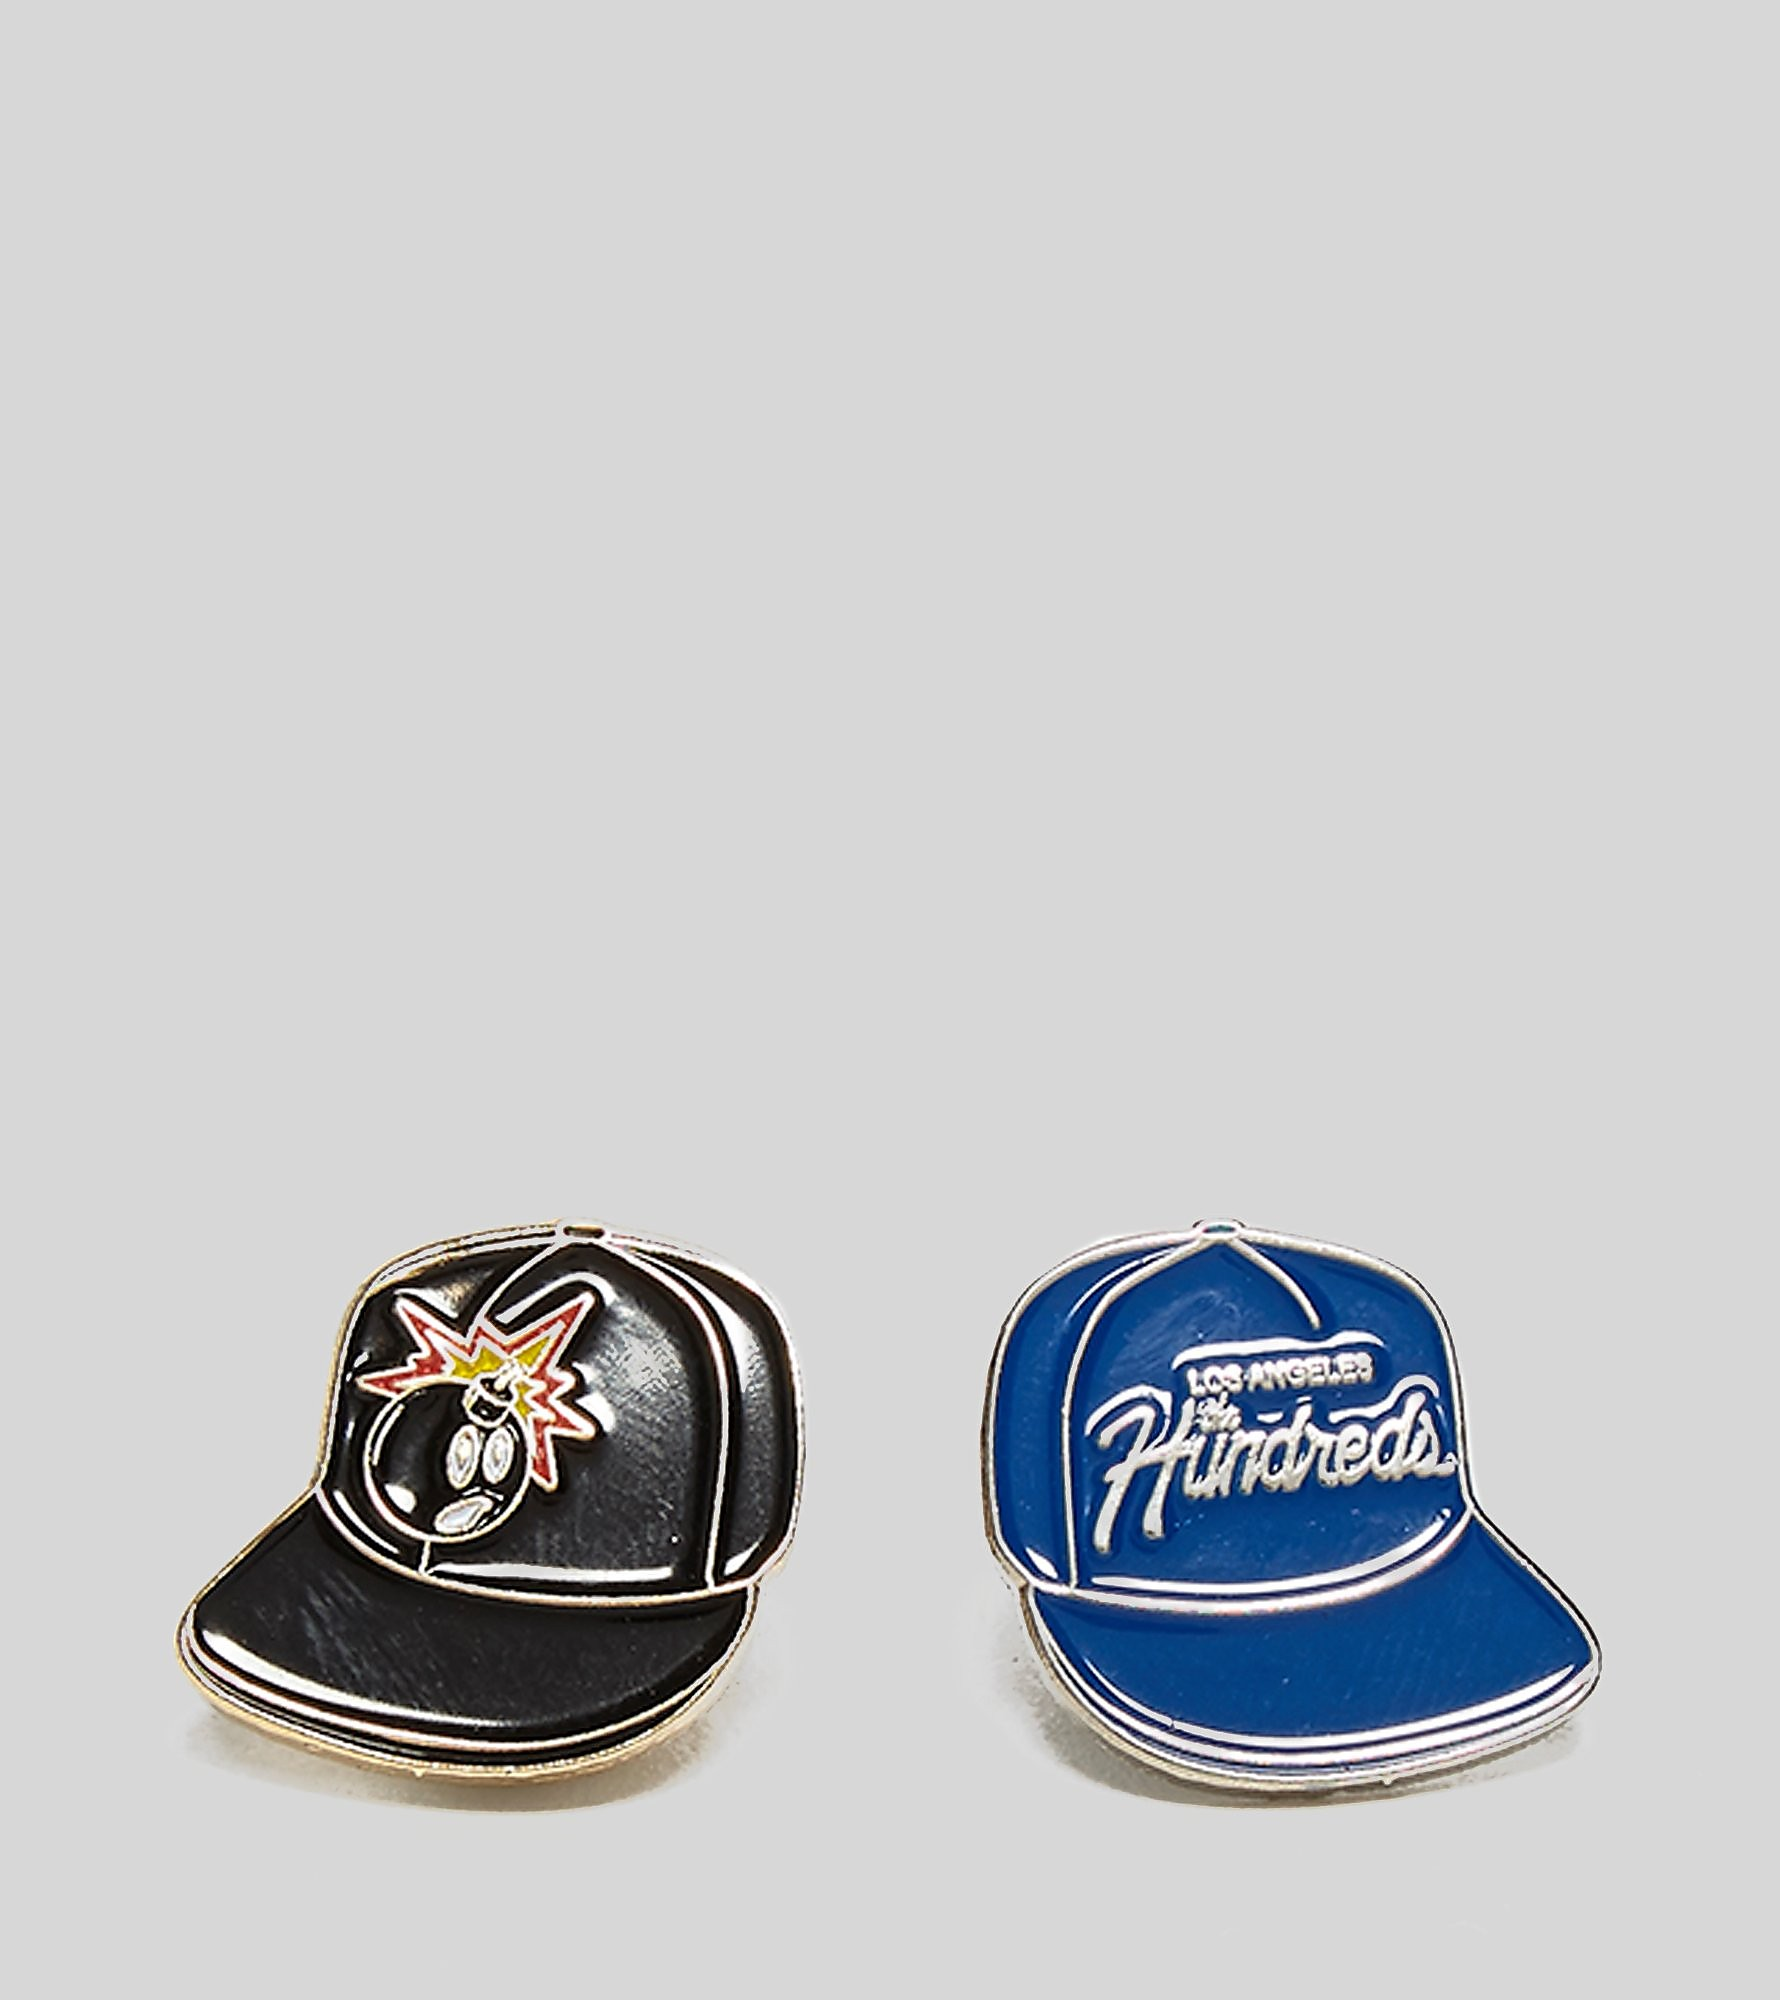 The Hundreds Headwear Pin Set